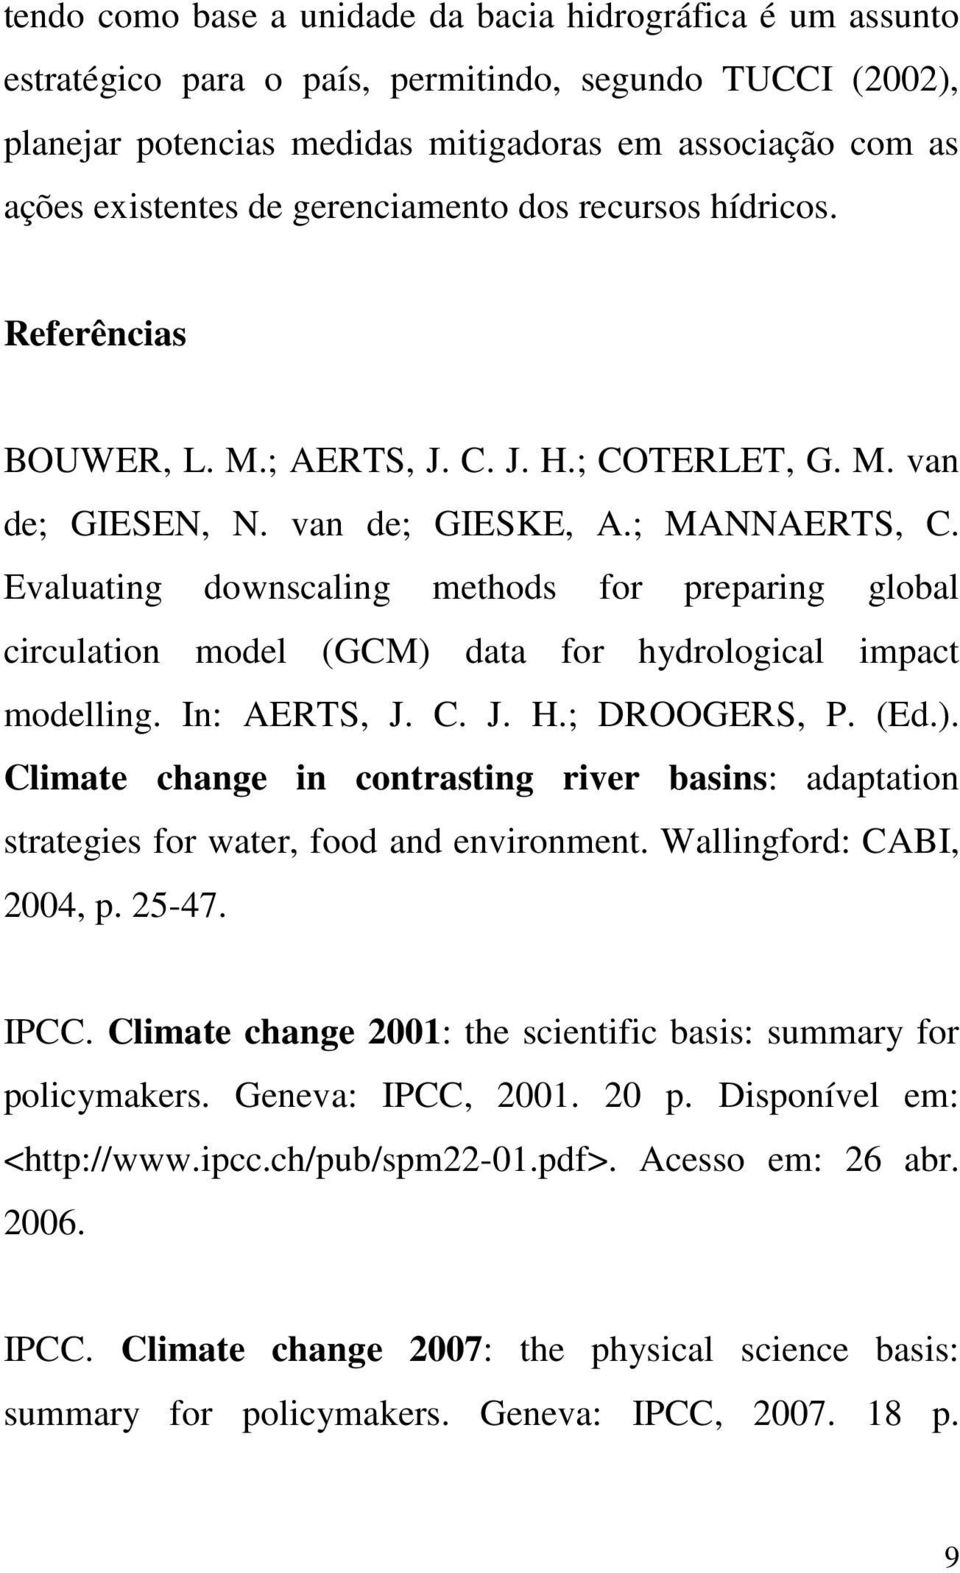 Evaluating downscaling methods for preparing global circulation model (GCM) data for hydrological impact modelling. In: AERTS, J. C. J. H.; DROOGERS, P. (Ed.). Climate change in contrasting river basins: adaptation strategies for water, food and environment.